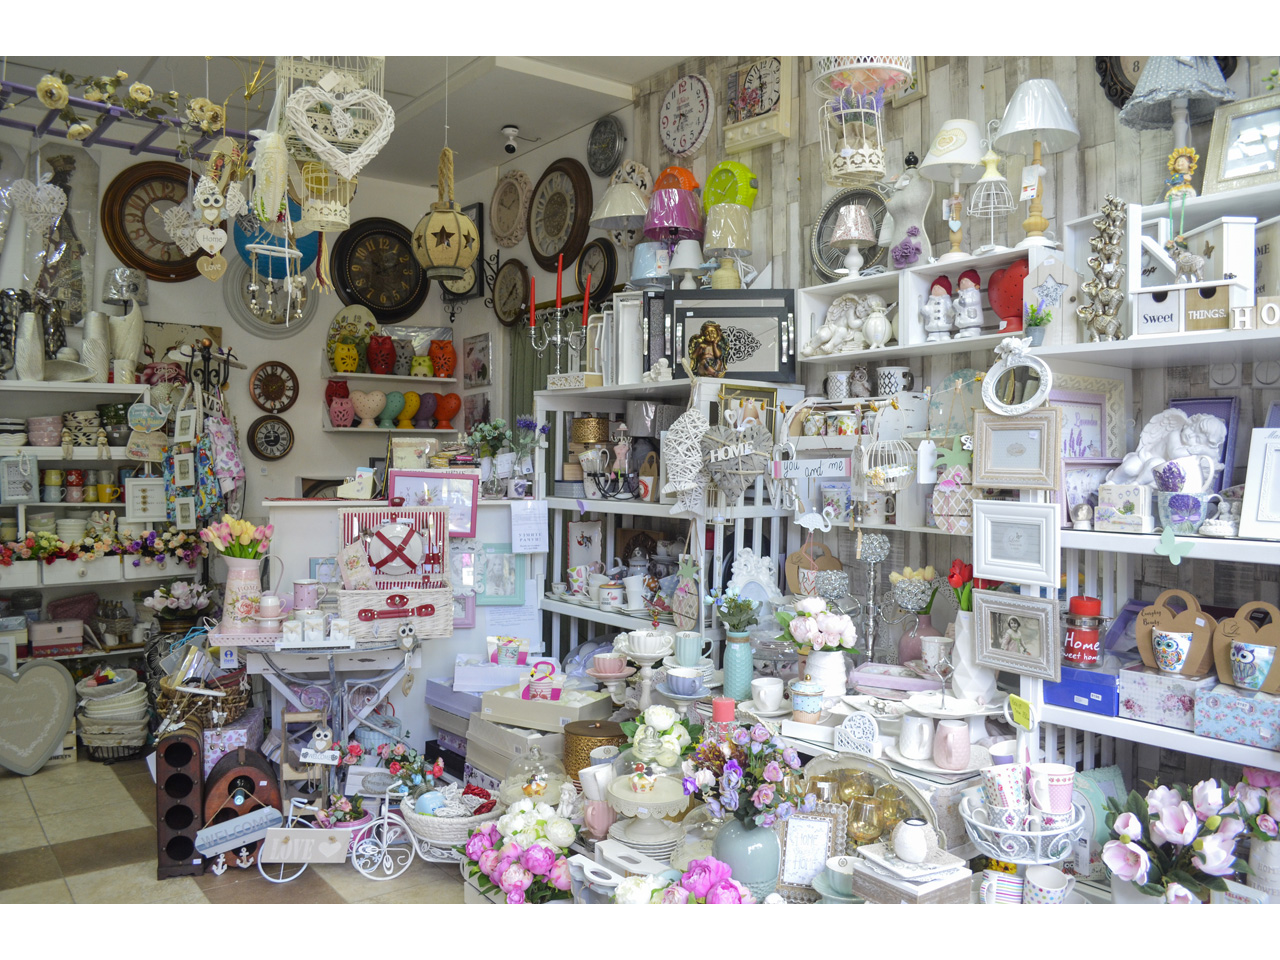 GALERIJA GIFT SHOP PČELICA Decoration objects Beograd